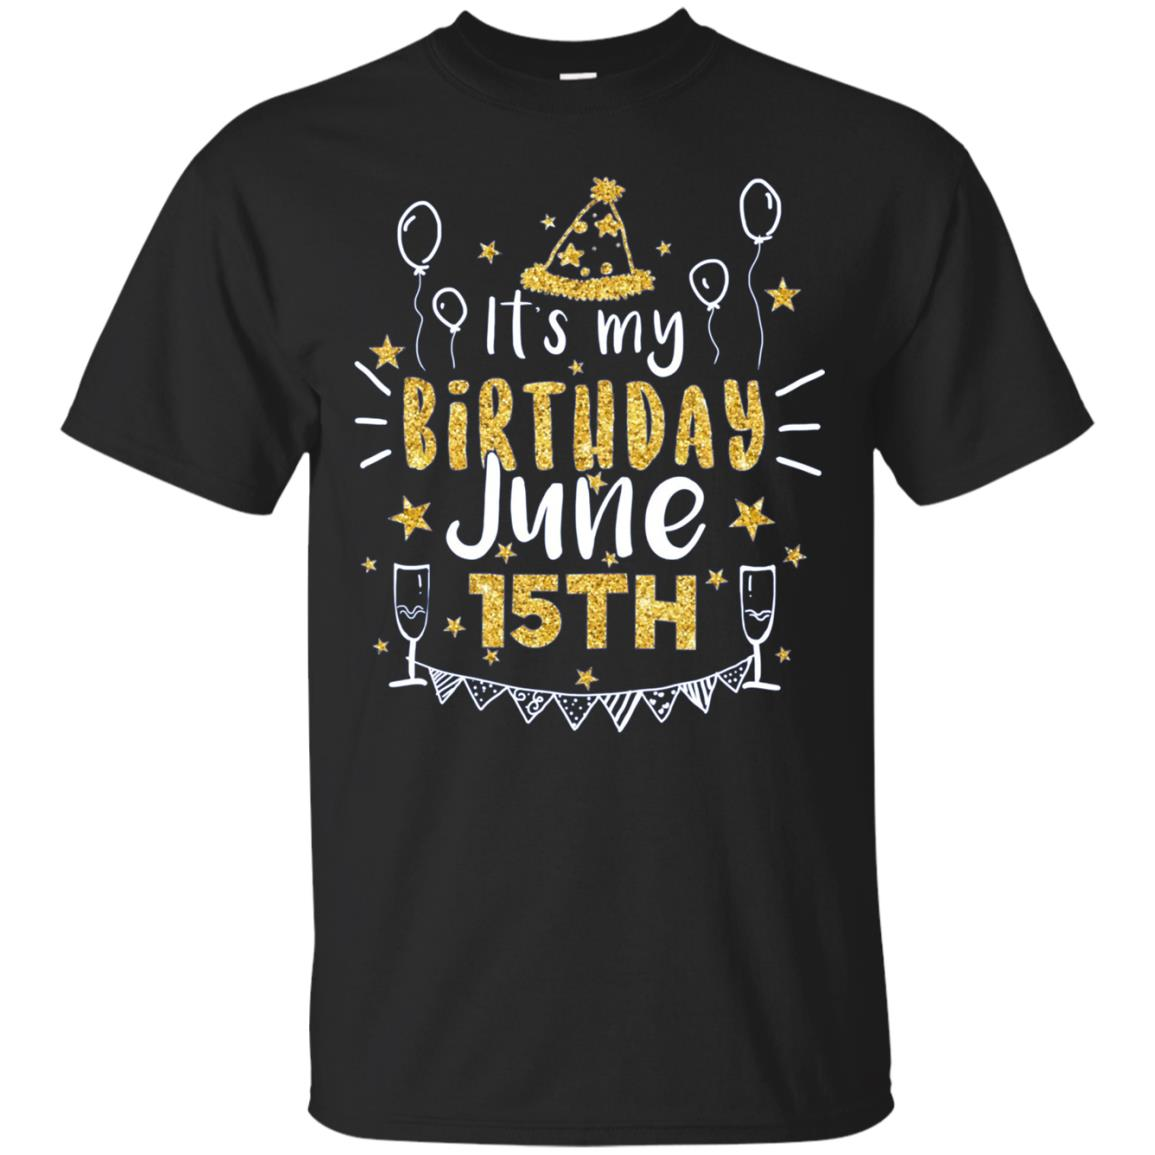 Birthday June 15th Party Long Sleeve Born On June 15th